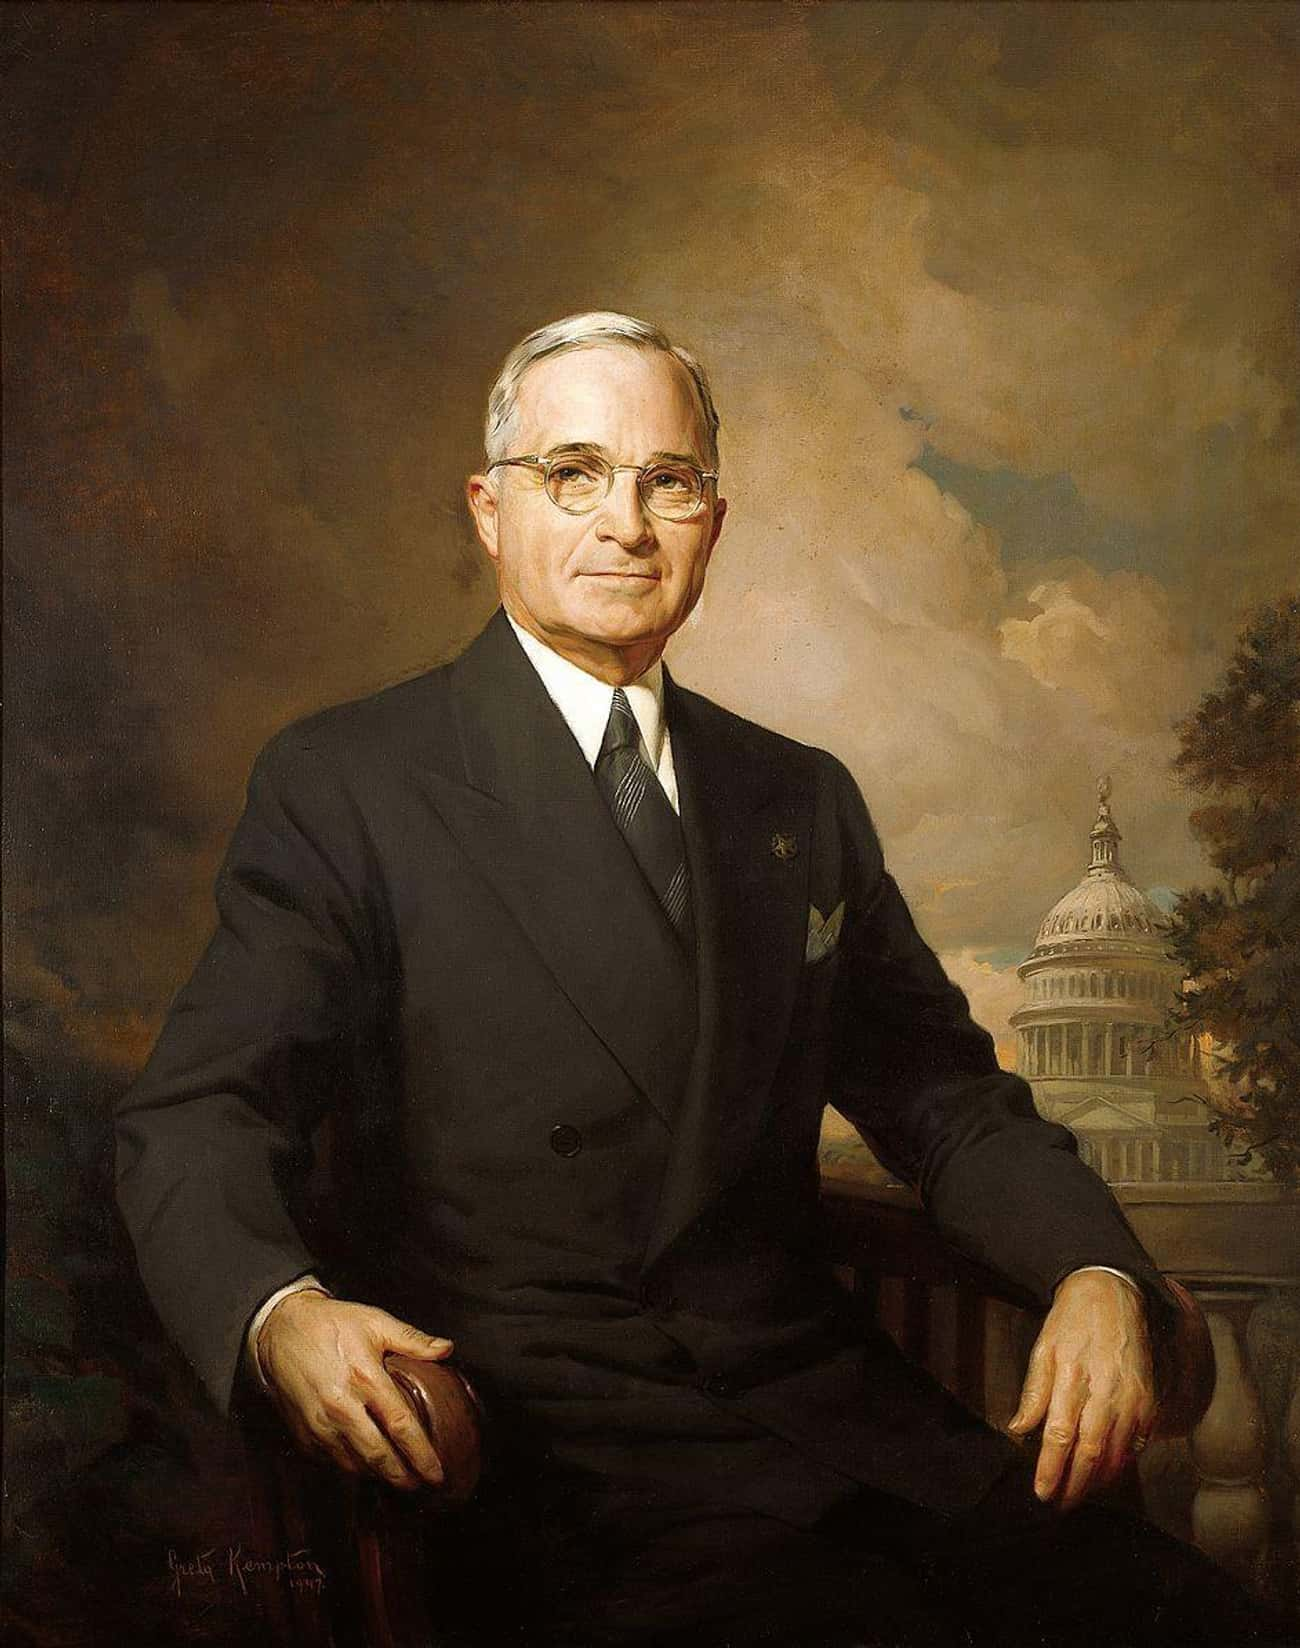 Harry S. Truman is listed (or ranked) 4 on the list All the Presidential Portraits, Ranked